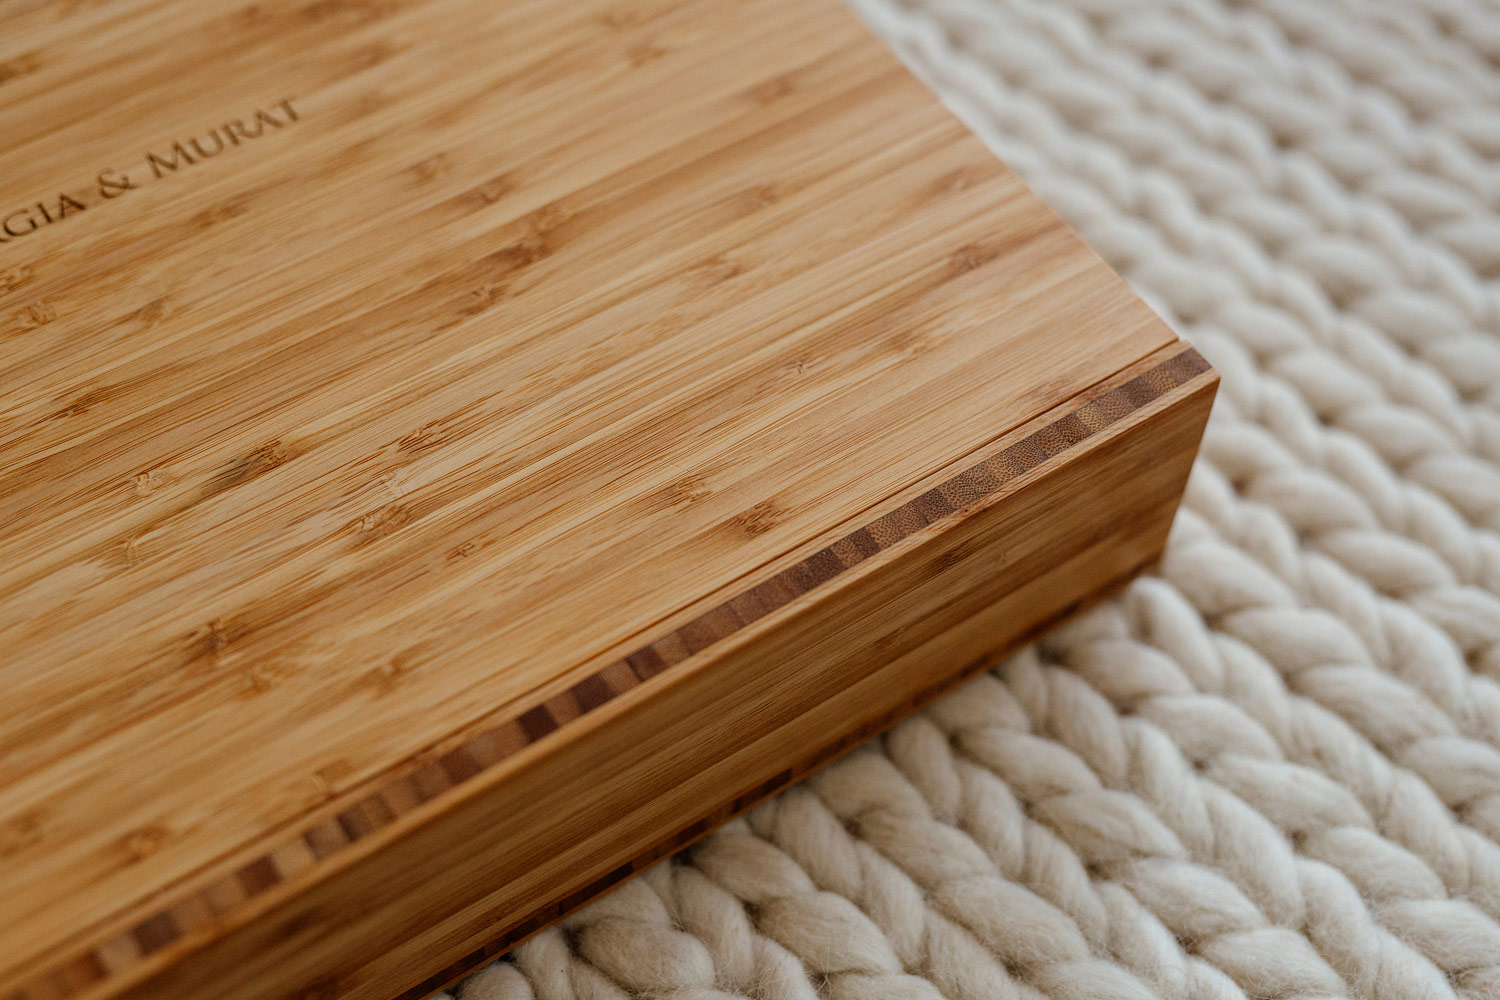 Stunning bamboo box from Folio Albums